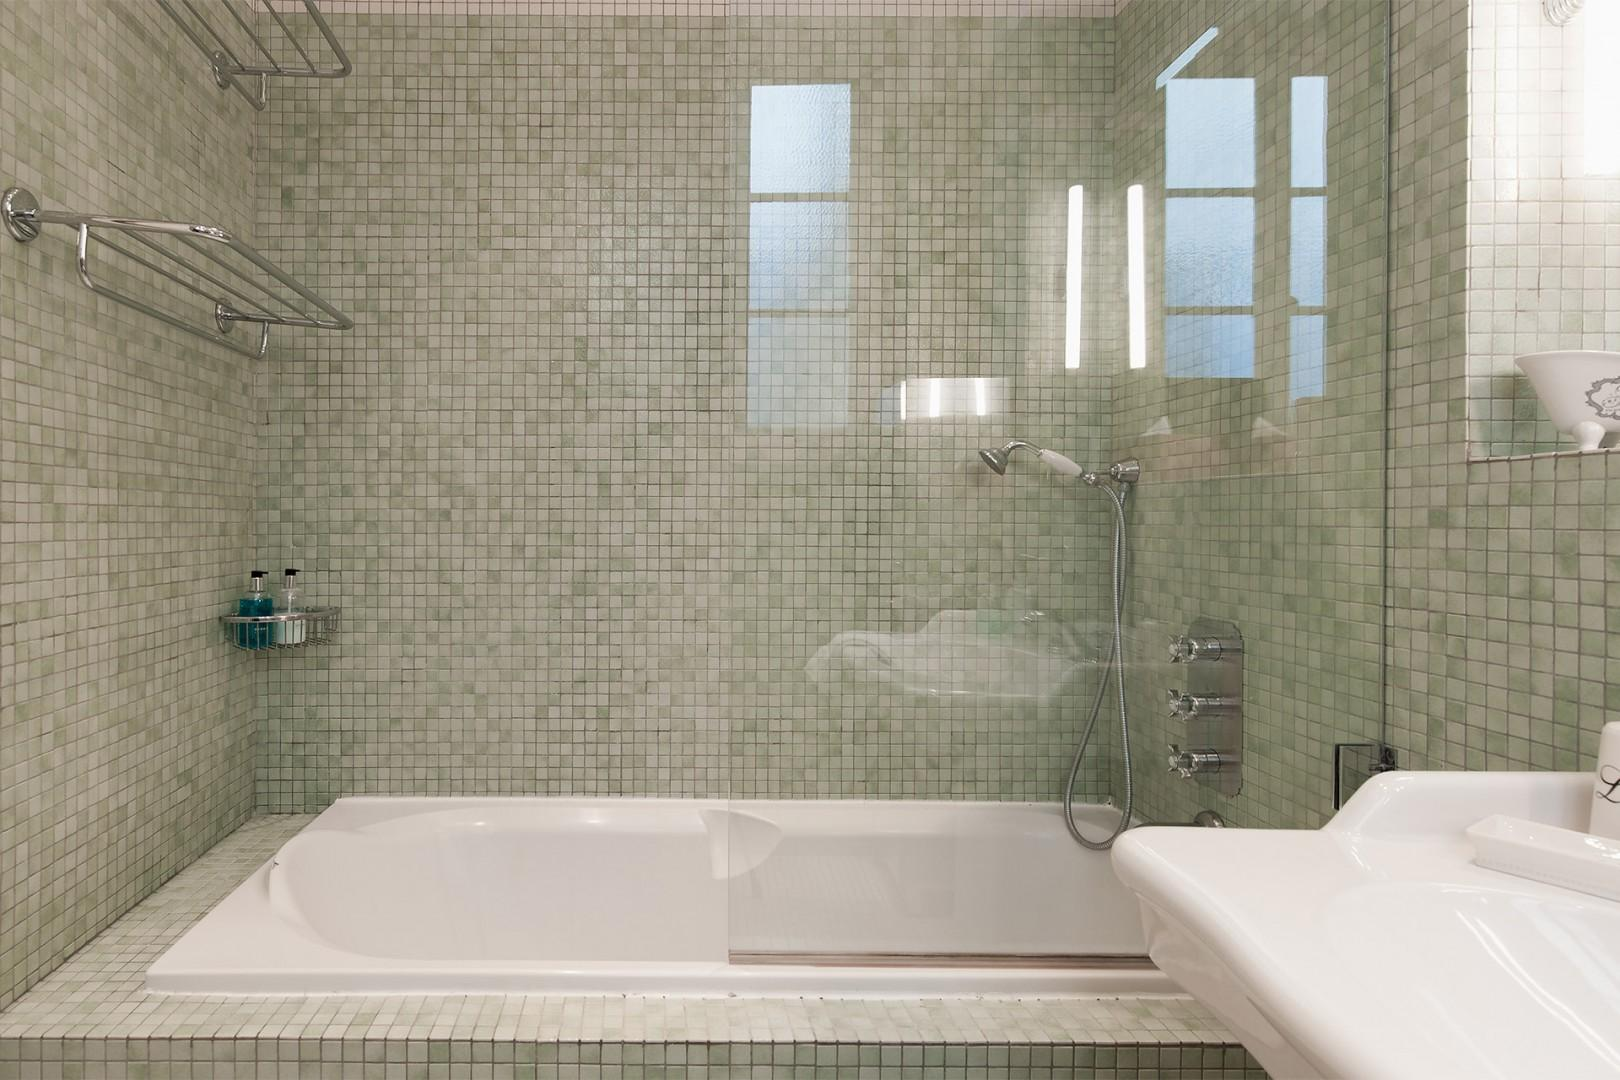 Take a relaxing bath surrounded by glistening tiles.